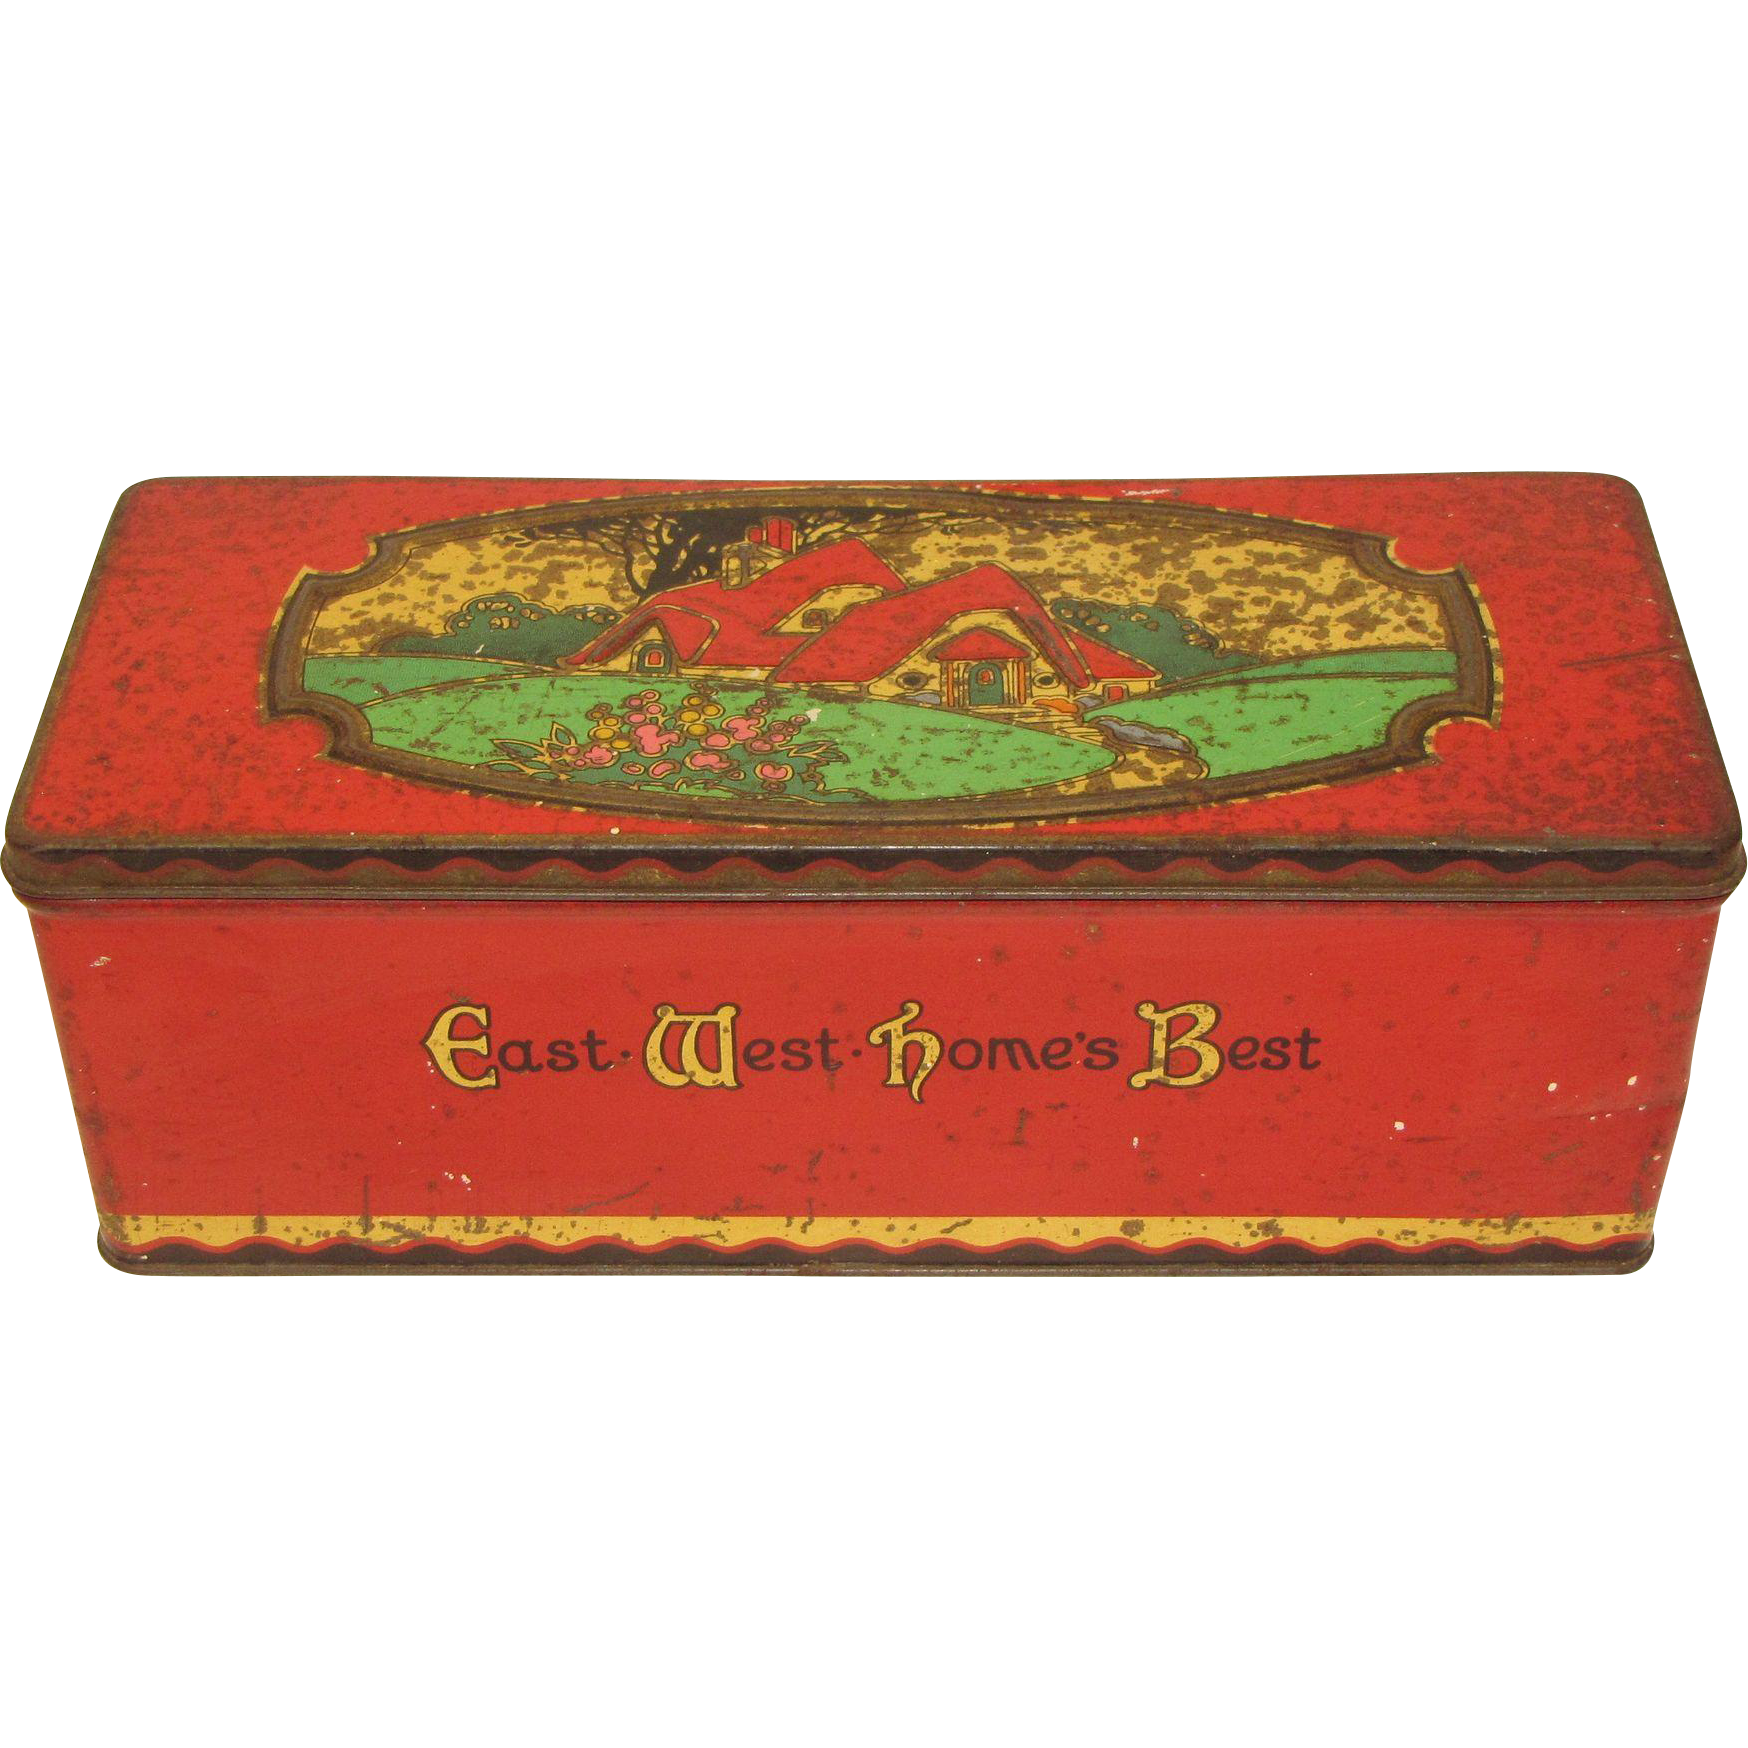 C. 1925 CWS Biscuit Tin East West Home's Best